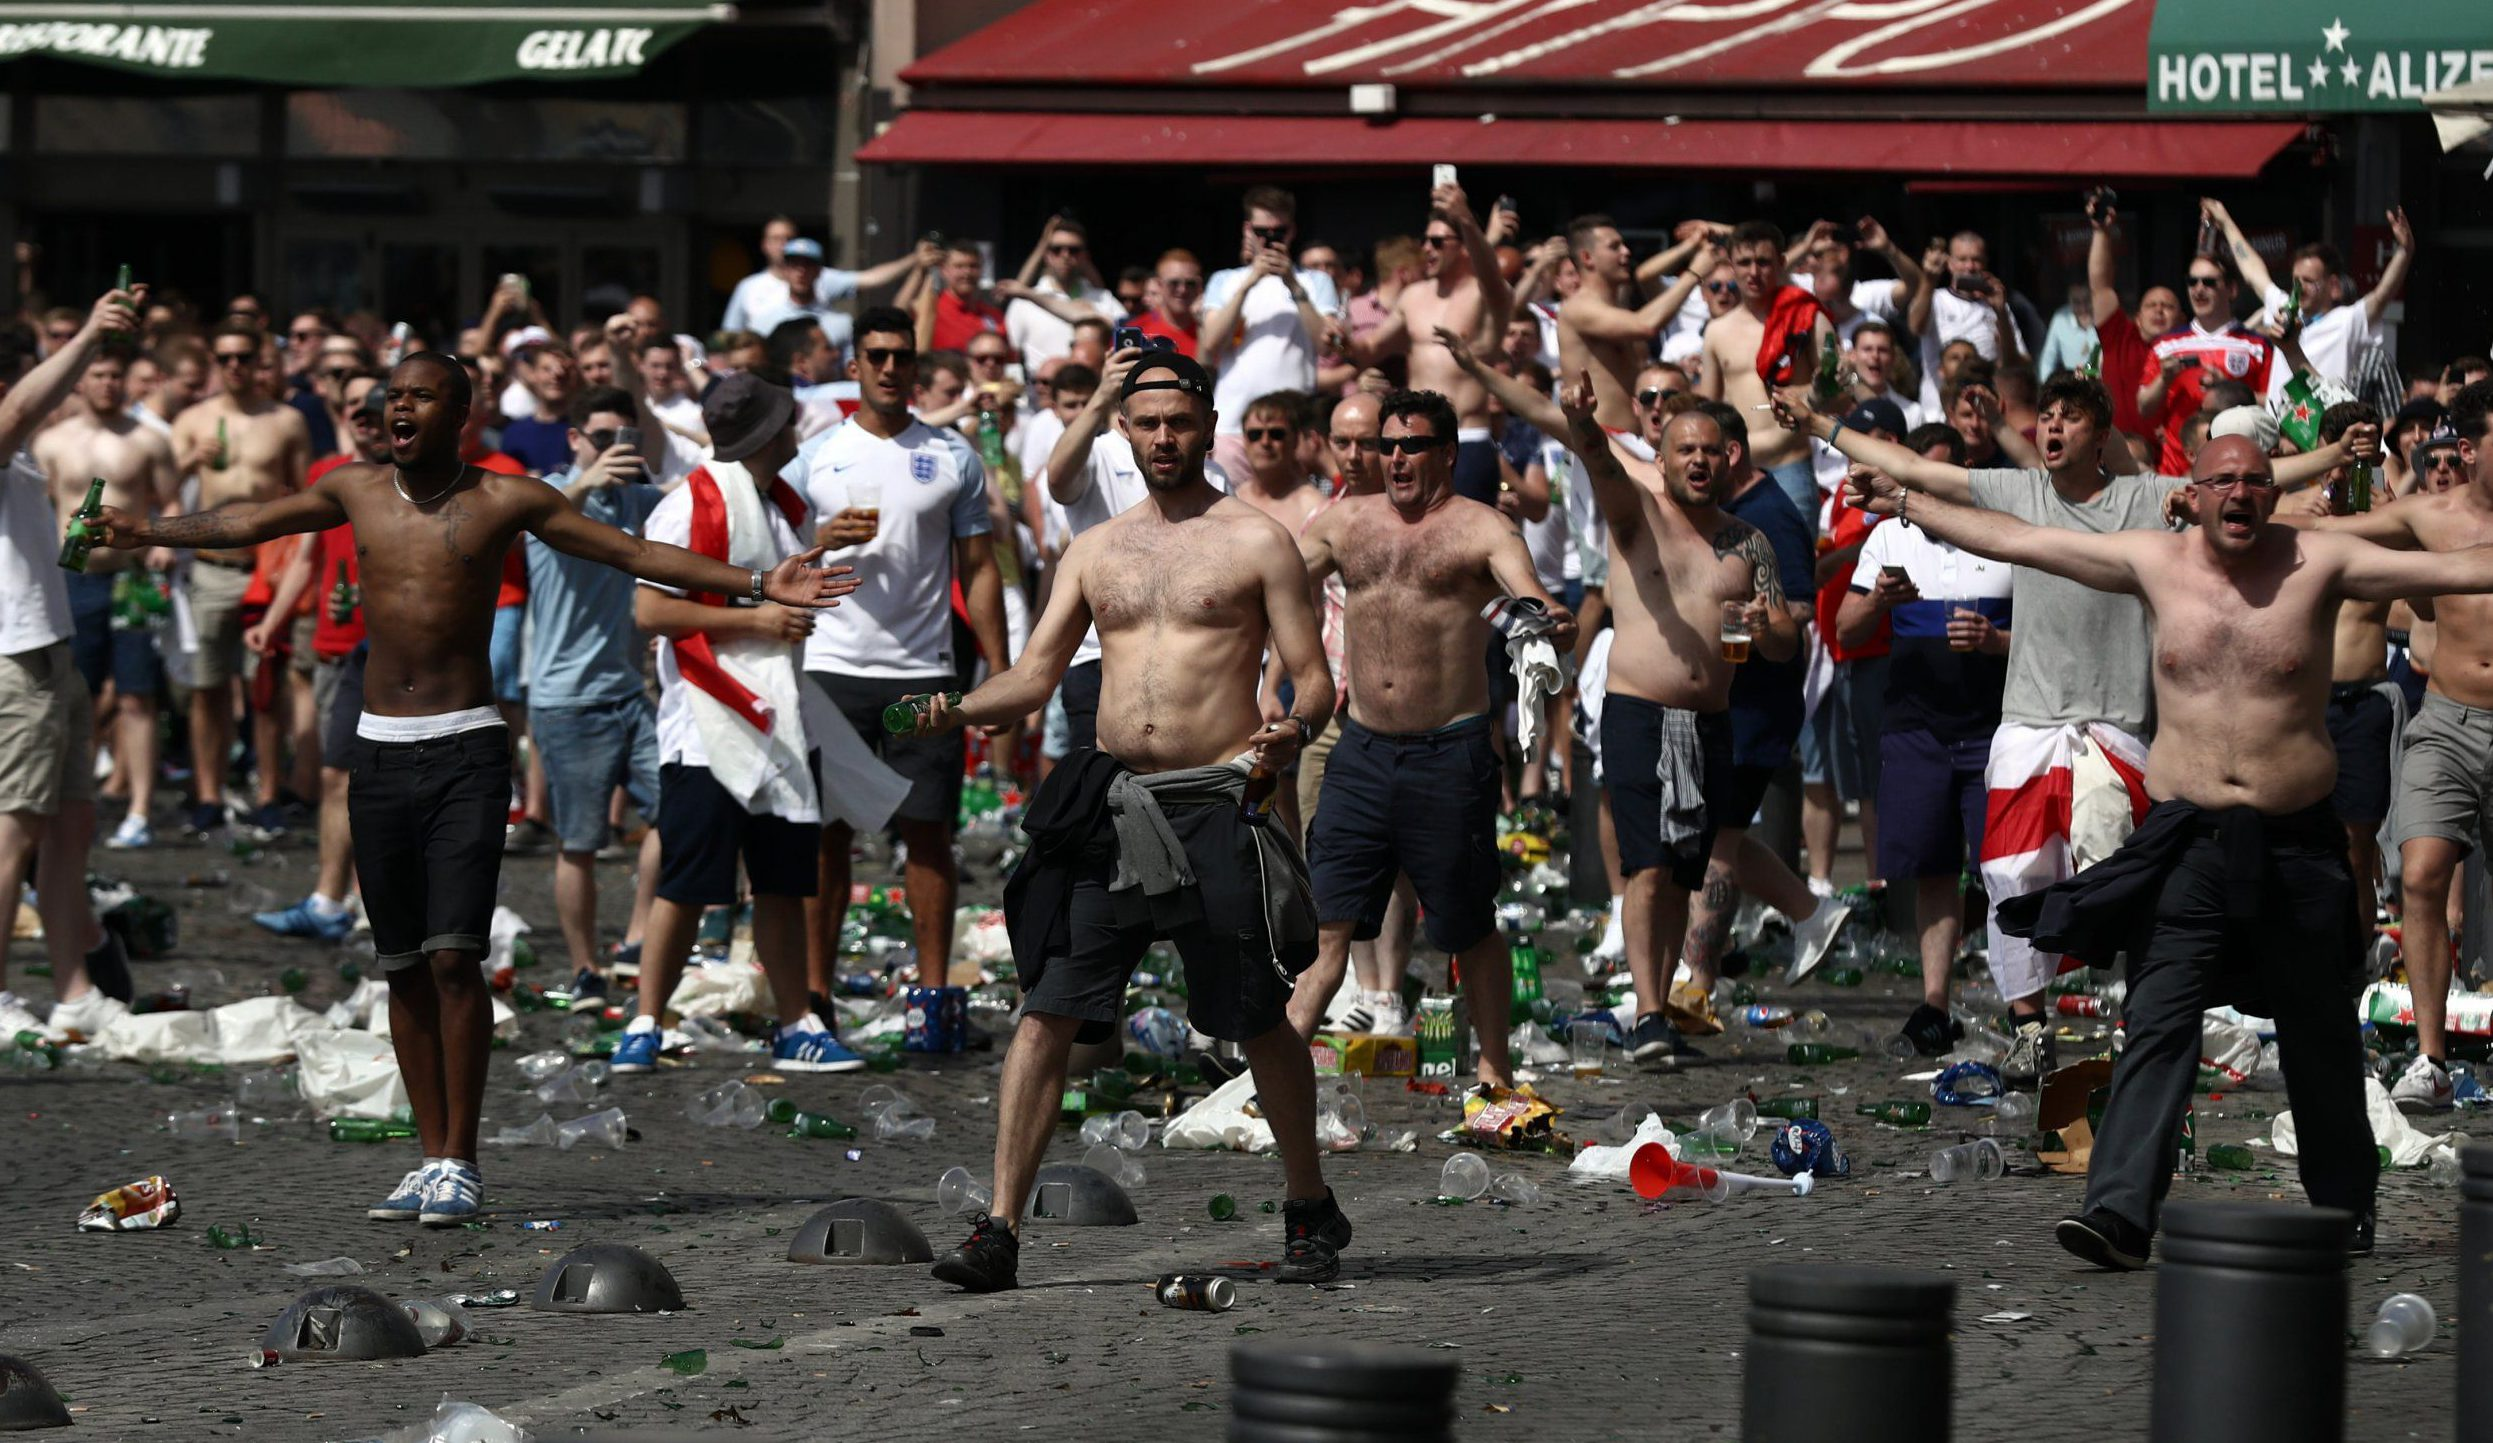 MARSEILLE, FRANCE - JUNE 11: England fans throw bottles and clash with police ahead of the game against Russia later today on June 11, 2016 in Marseille, France. Football fans from around Europe have descended on France for the UEFA Euro 2016 football tournament. (Photo by Carl Court/Getty Images)